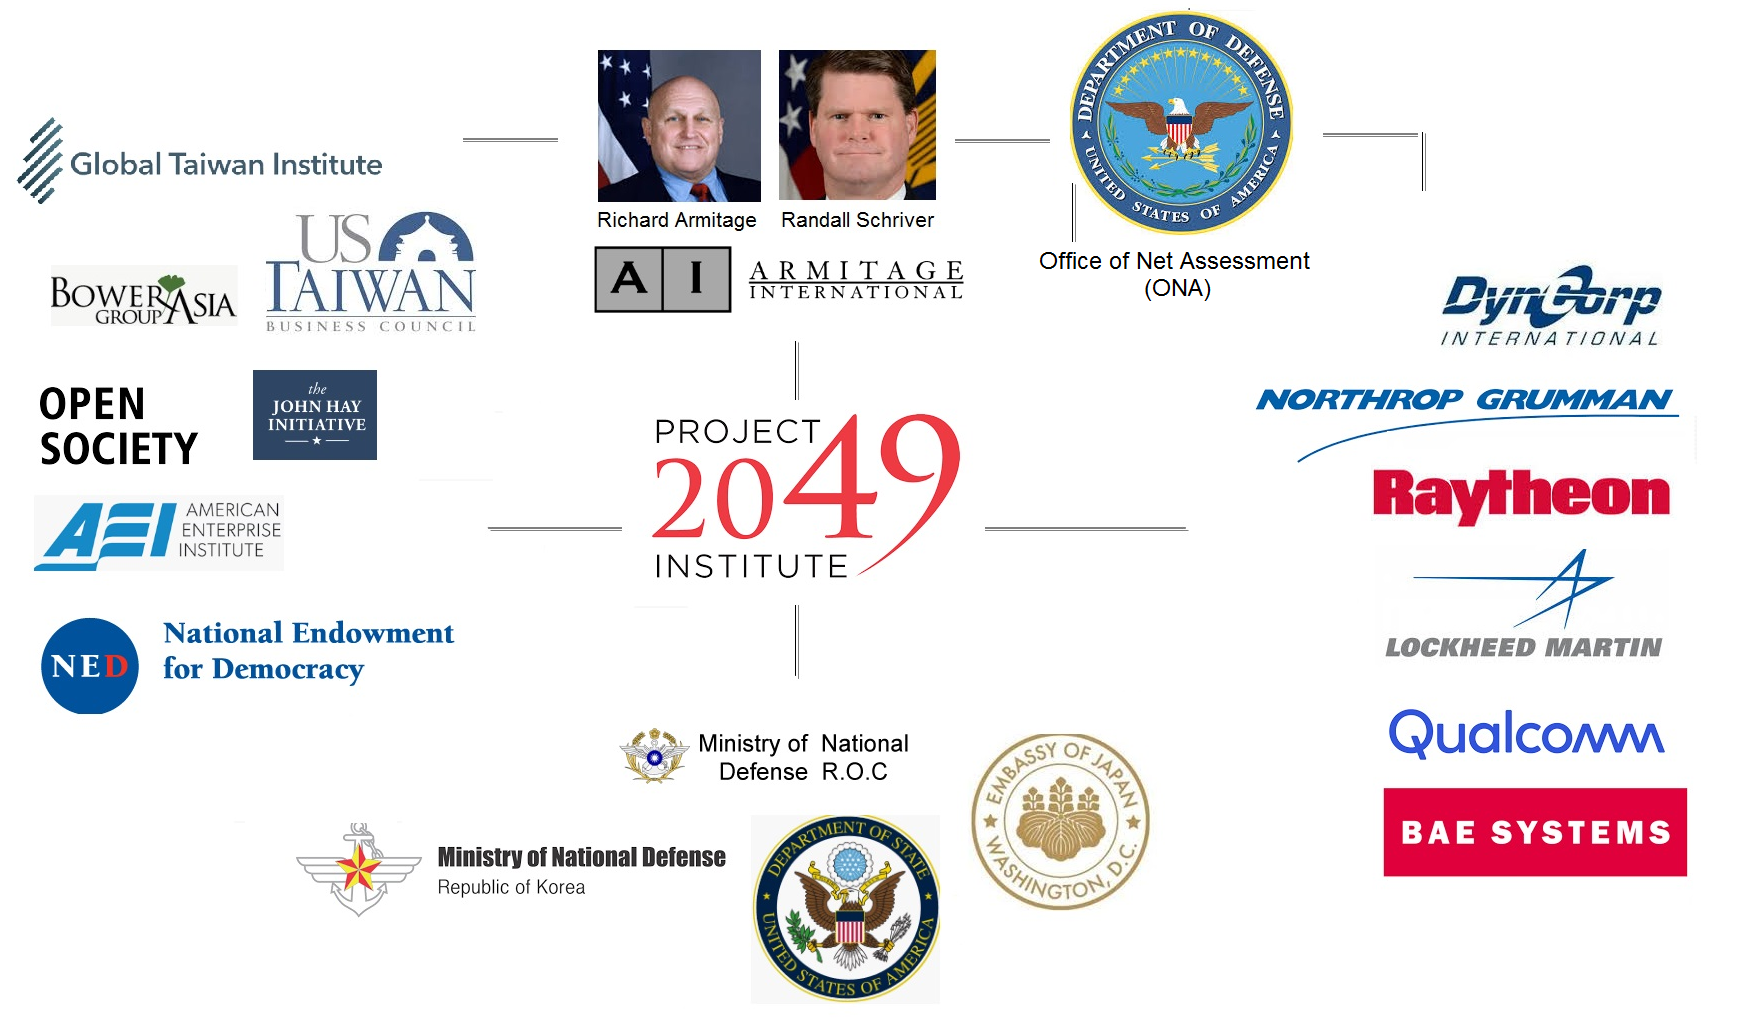 Project 2049 and Armitage: A Simplified Influence Chart